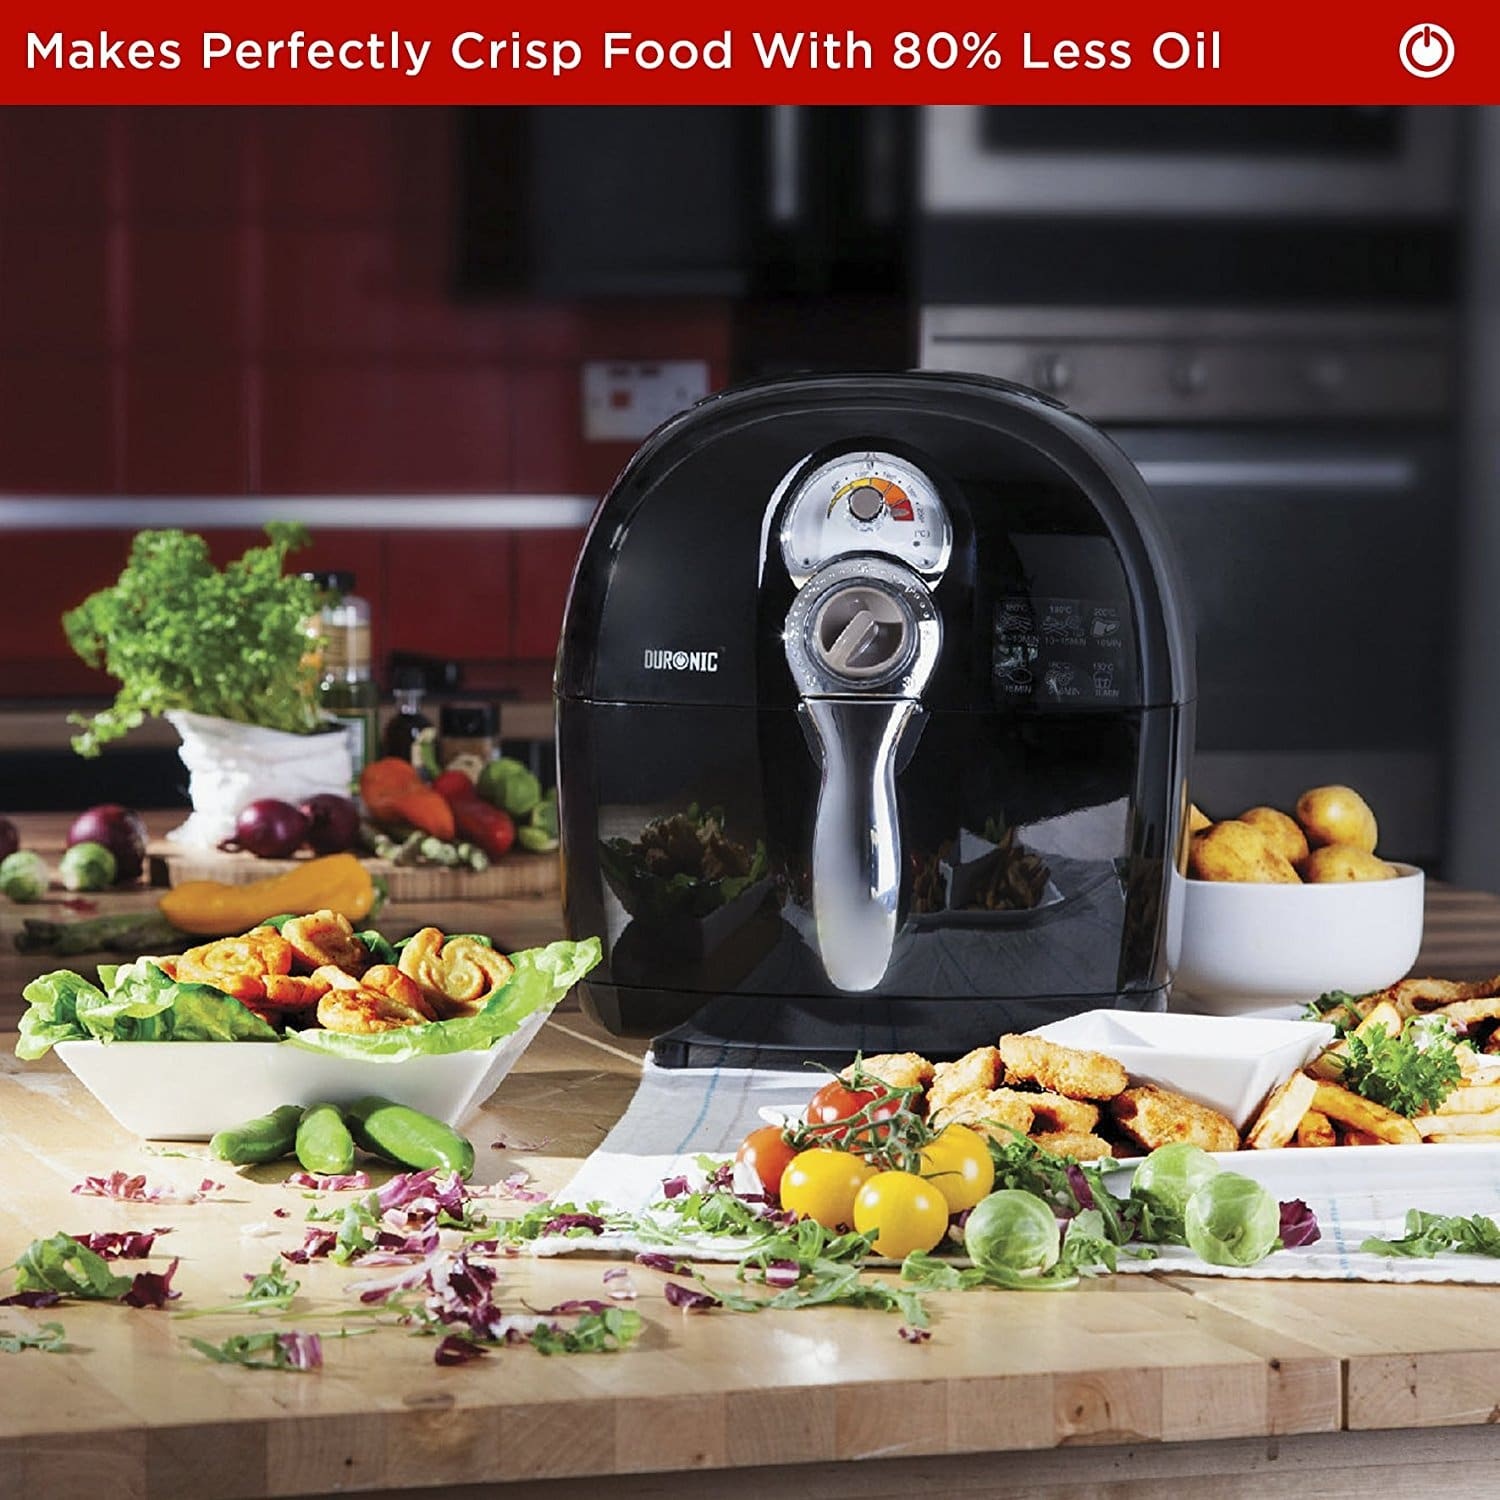 The duronic af1 air fryer for wonderful food